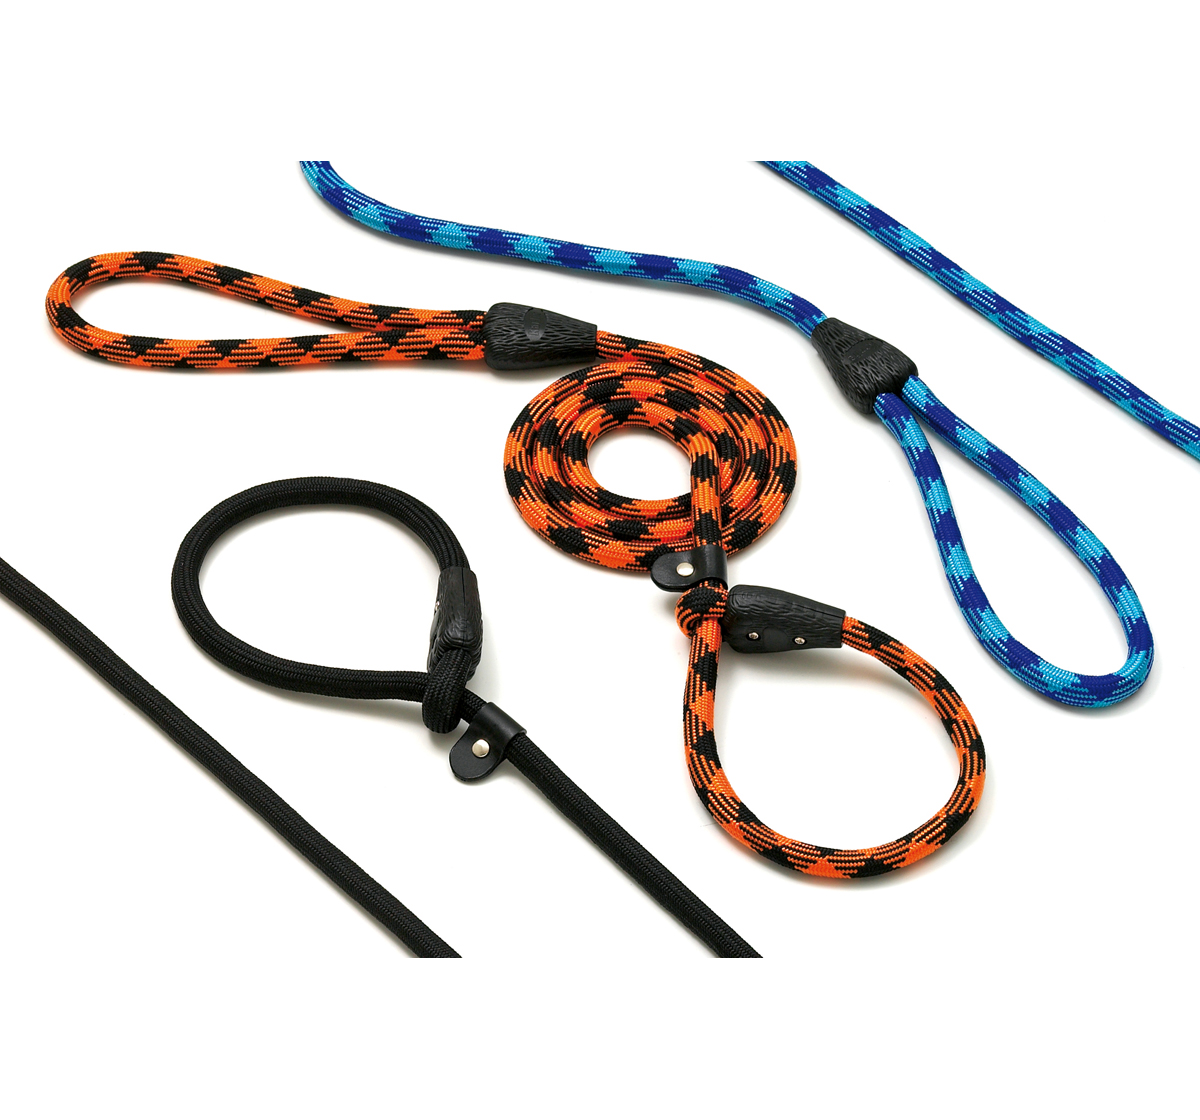 Allegro Easy Agility Leash 12mm 165cm Black - Light Blue Medium Karlie